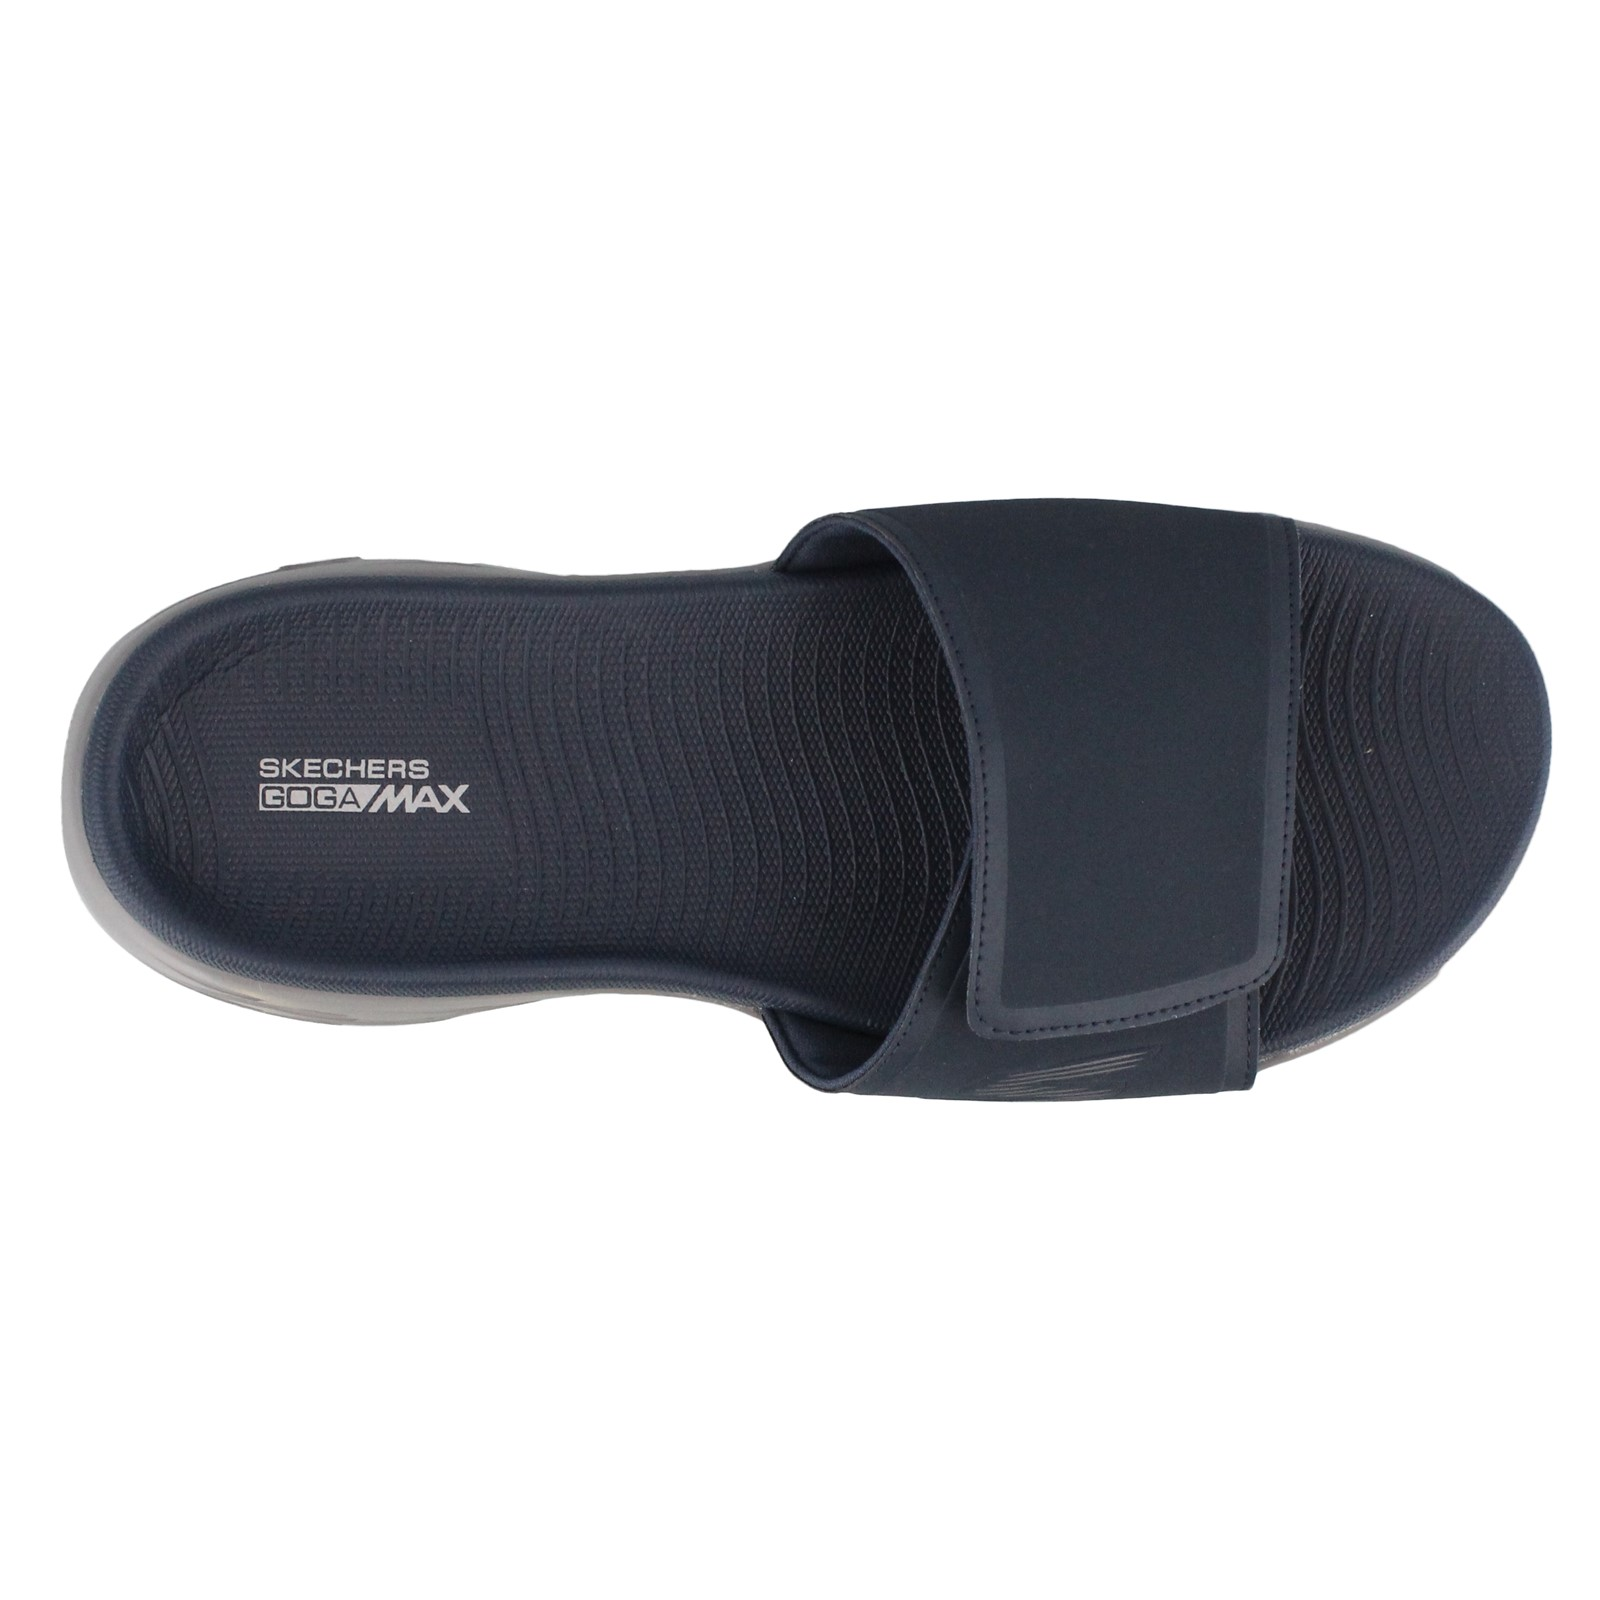 82df8d5851bf Next. add to favorites. Men s Skechers Performance